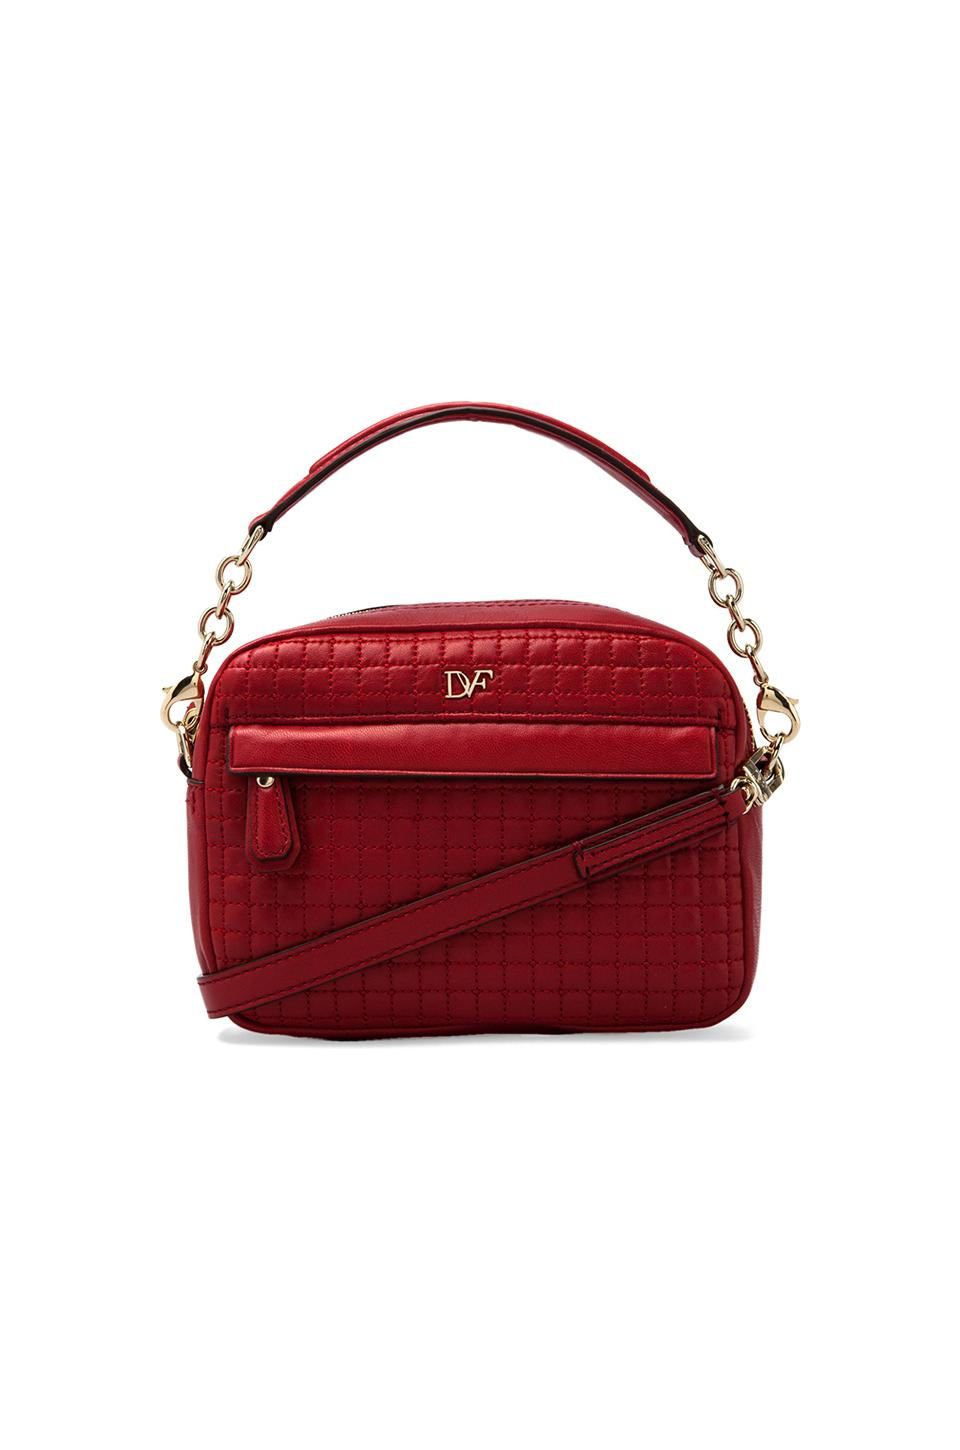 Diane von Furstenberg Milo Mini Quilted Leather Bag in Classic Red